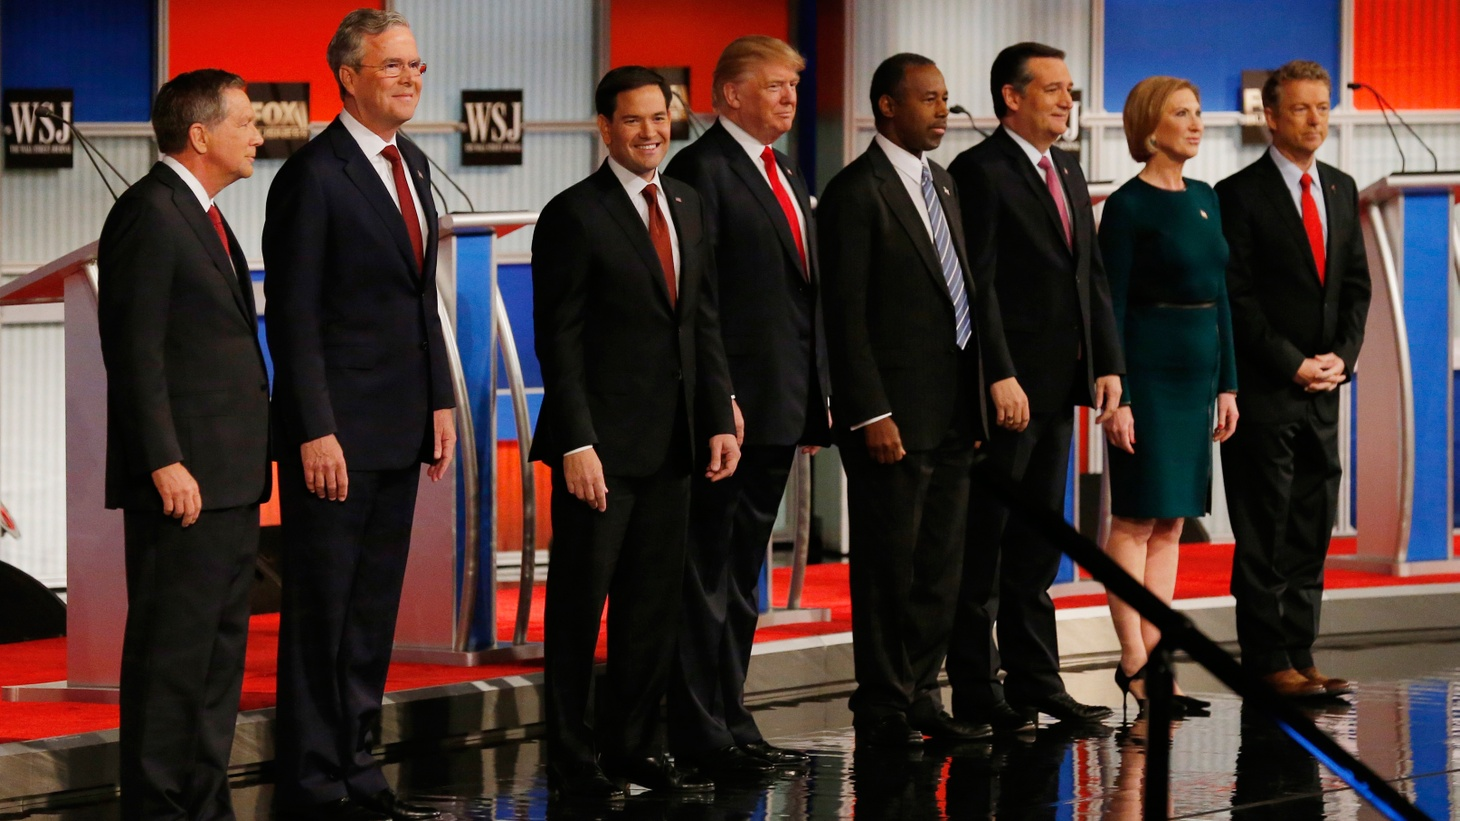 Polls show that Democrats are regaining some confidence in the economy, but Republicans are convinced it's still in big trouble. That was the message in last night's GOP presidential debate as eight candidates appealed to the base of the party.